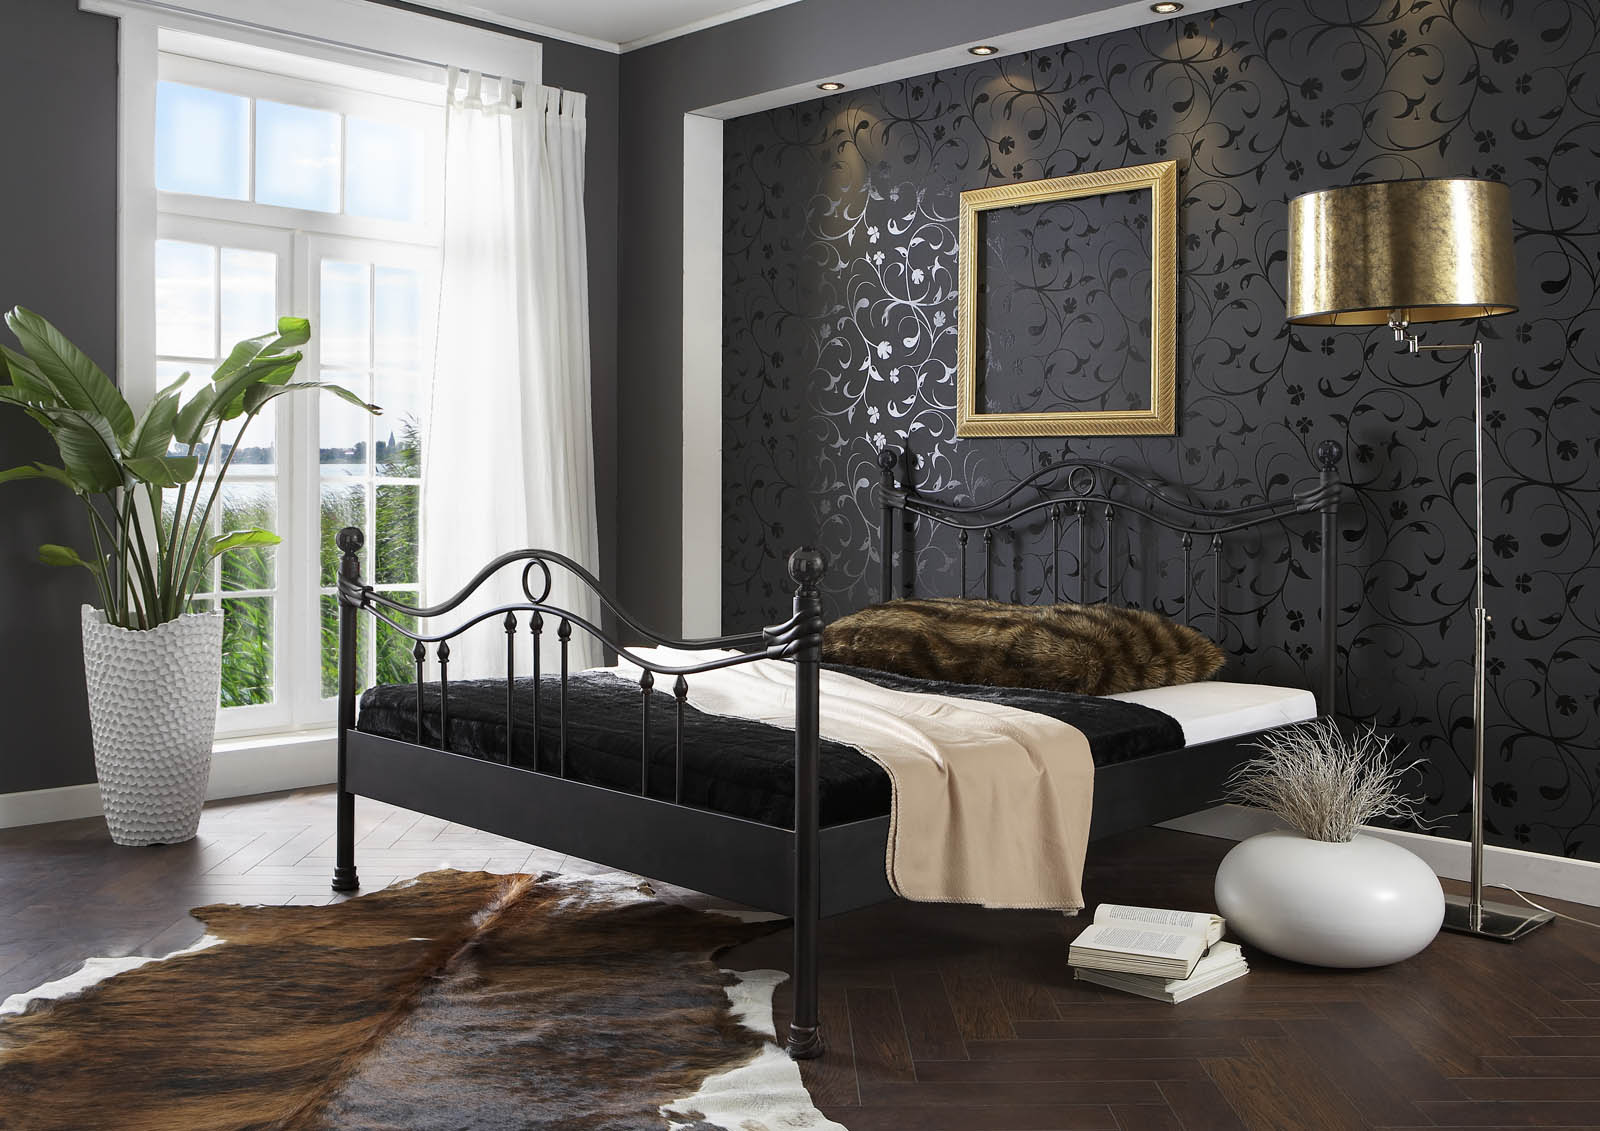 sam metallbett schwarz 180 x 200 cm kea auf lager. Black Bedroom Furniture Sets. Home Design Ideas